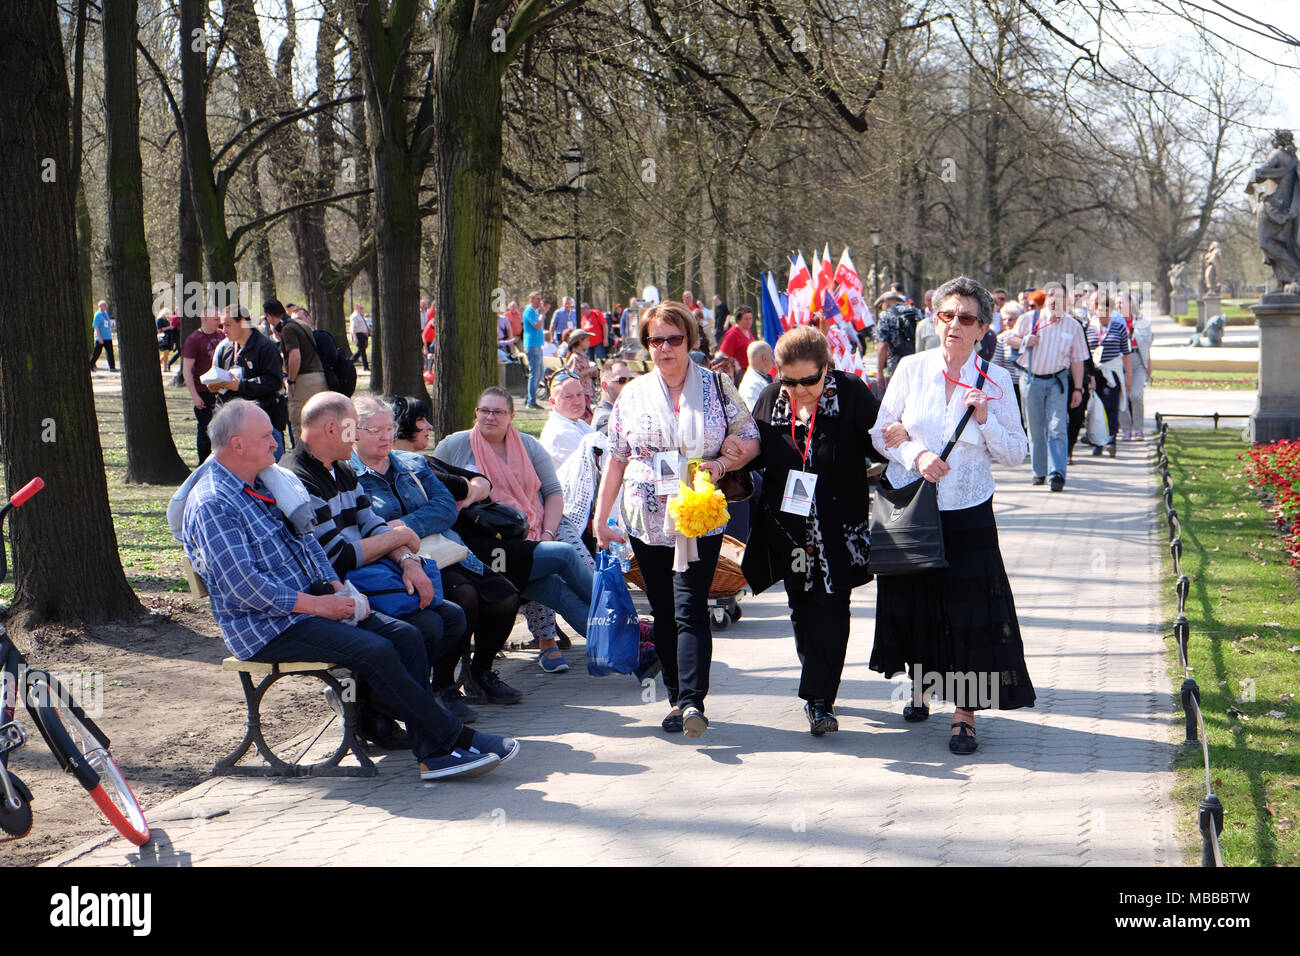 Warsaw, Poland - Tuesday 10th April 2018 - Poles arrive at Plac Pilsudskiego to take part in the commemoration service to remember the victims of the Smolensk ( Russia ) air crash in 2010 when a Polish Air Force VIP jet crashed killing 96 individuals including the then President of Poland Lech Kaczyński and his wife Maria. Photo Steven May / Alamy Live News - Stock Image